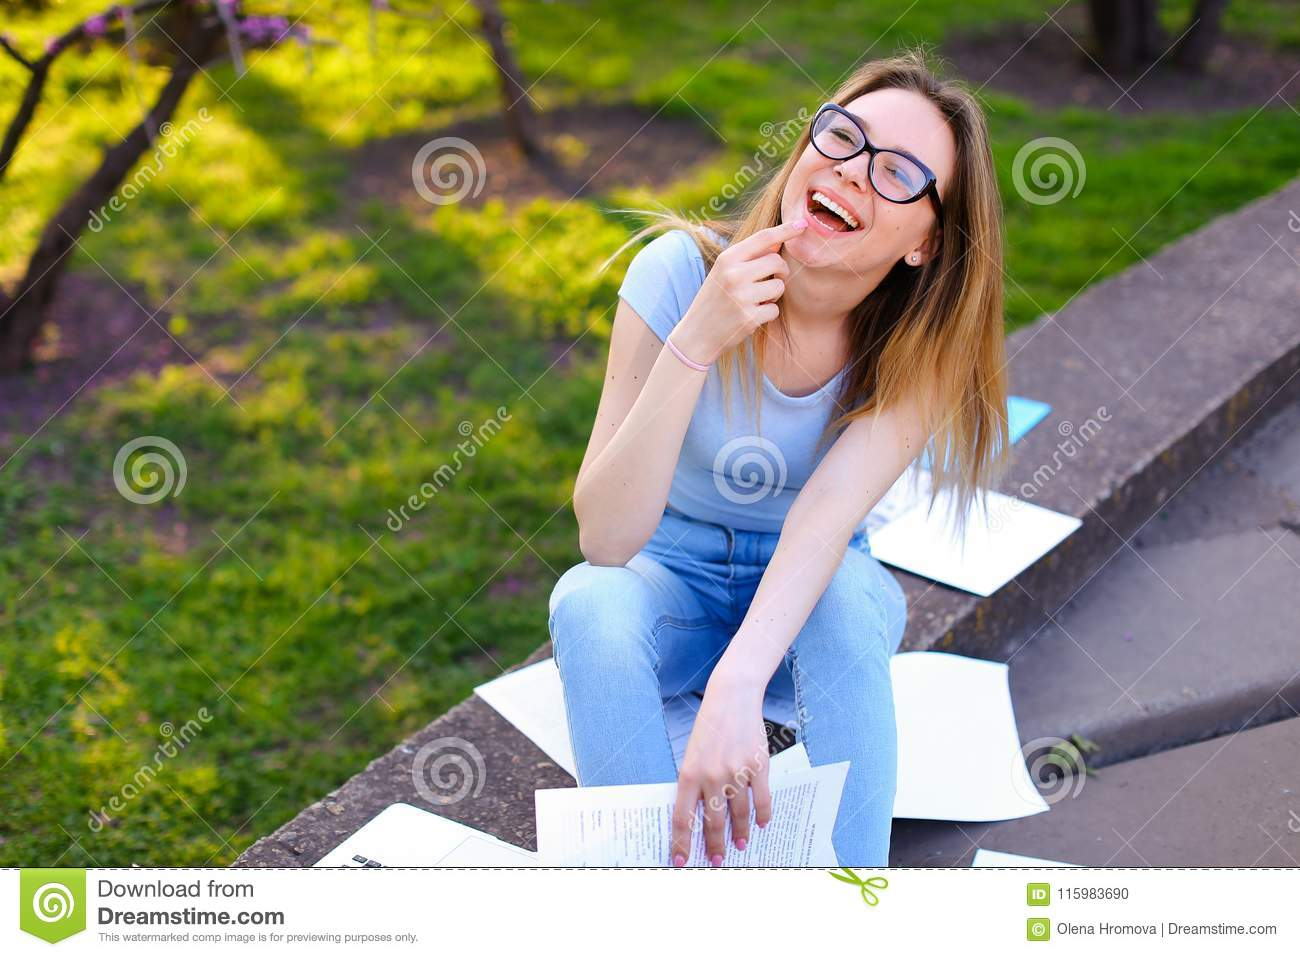 Pretty female student reading papers, smiling and studying in spring park.